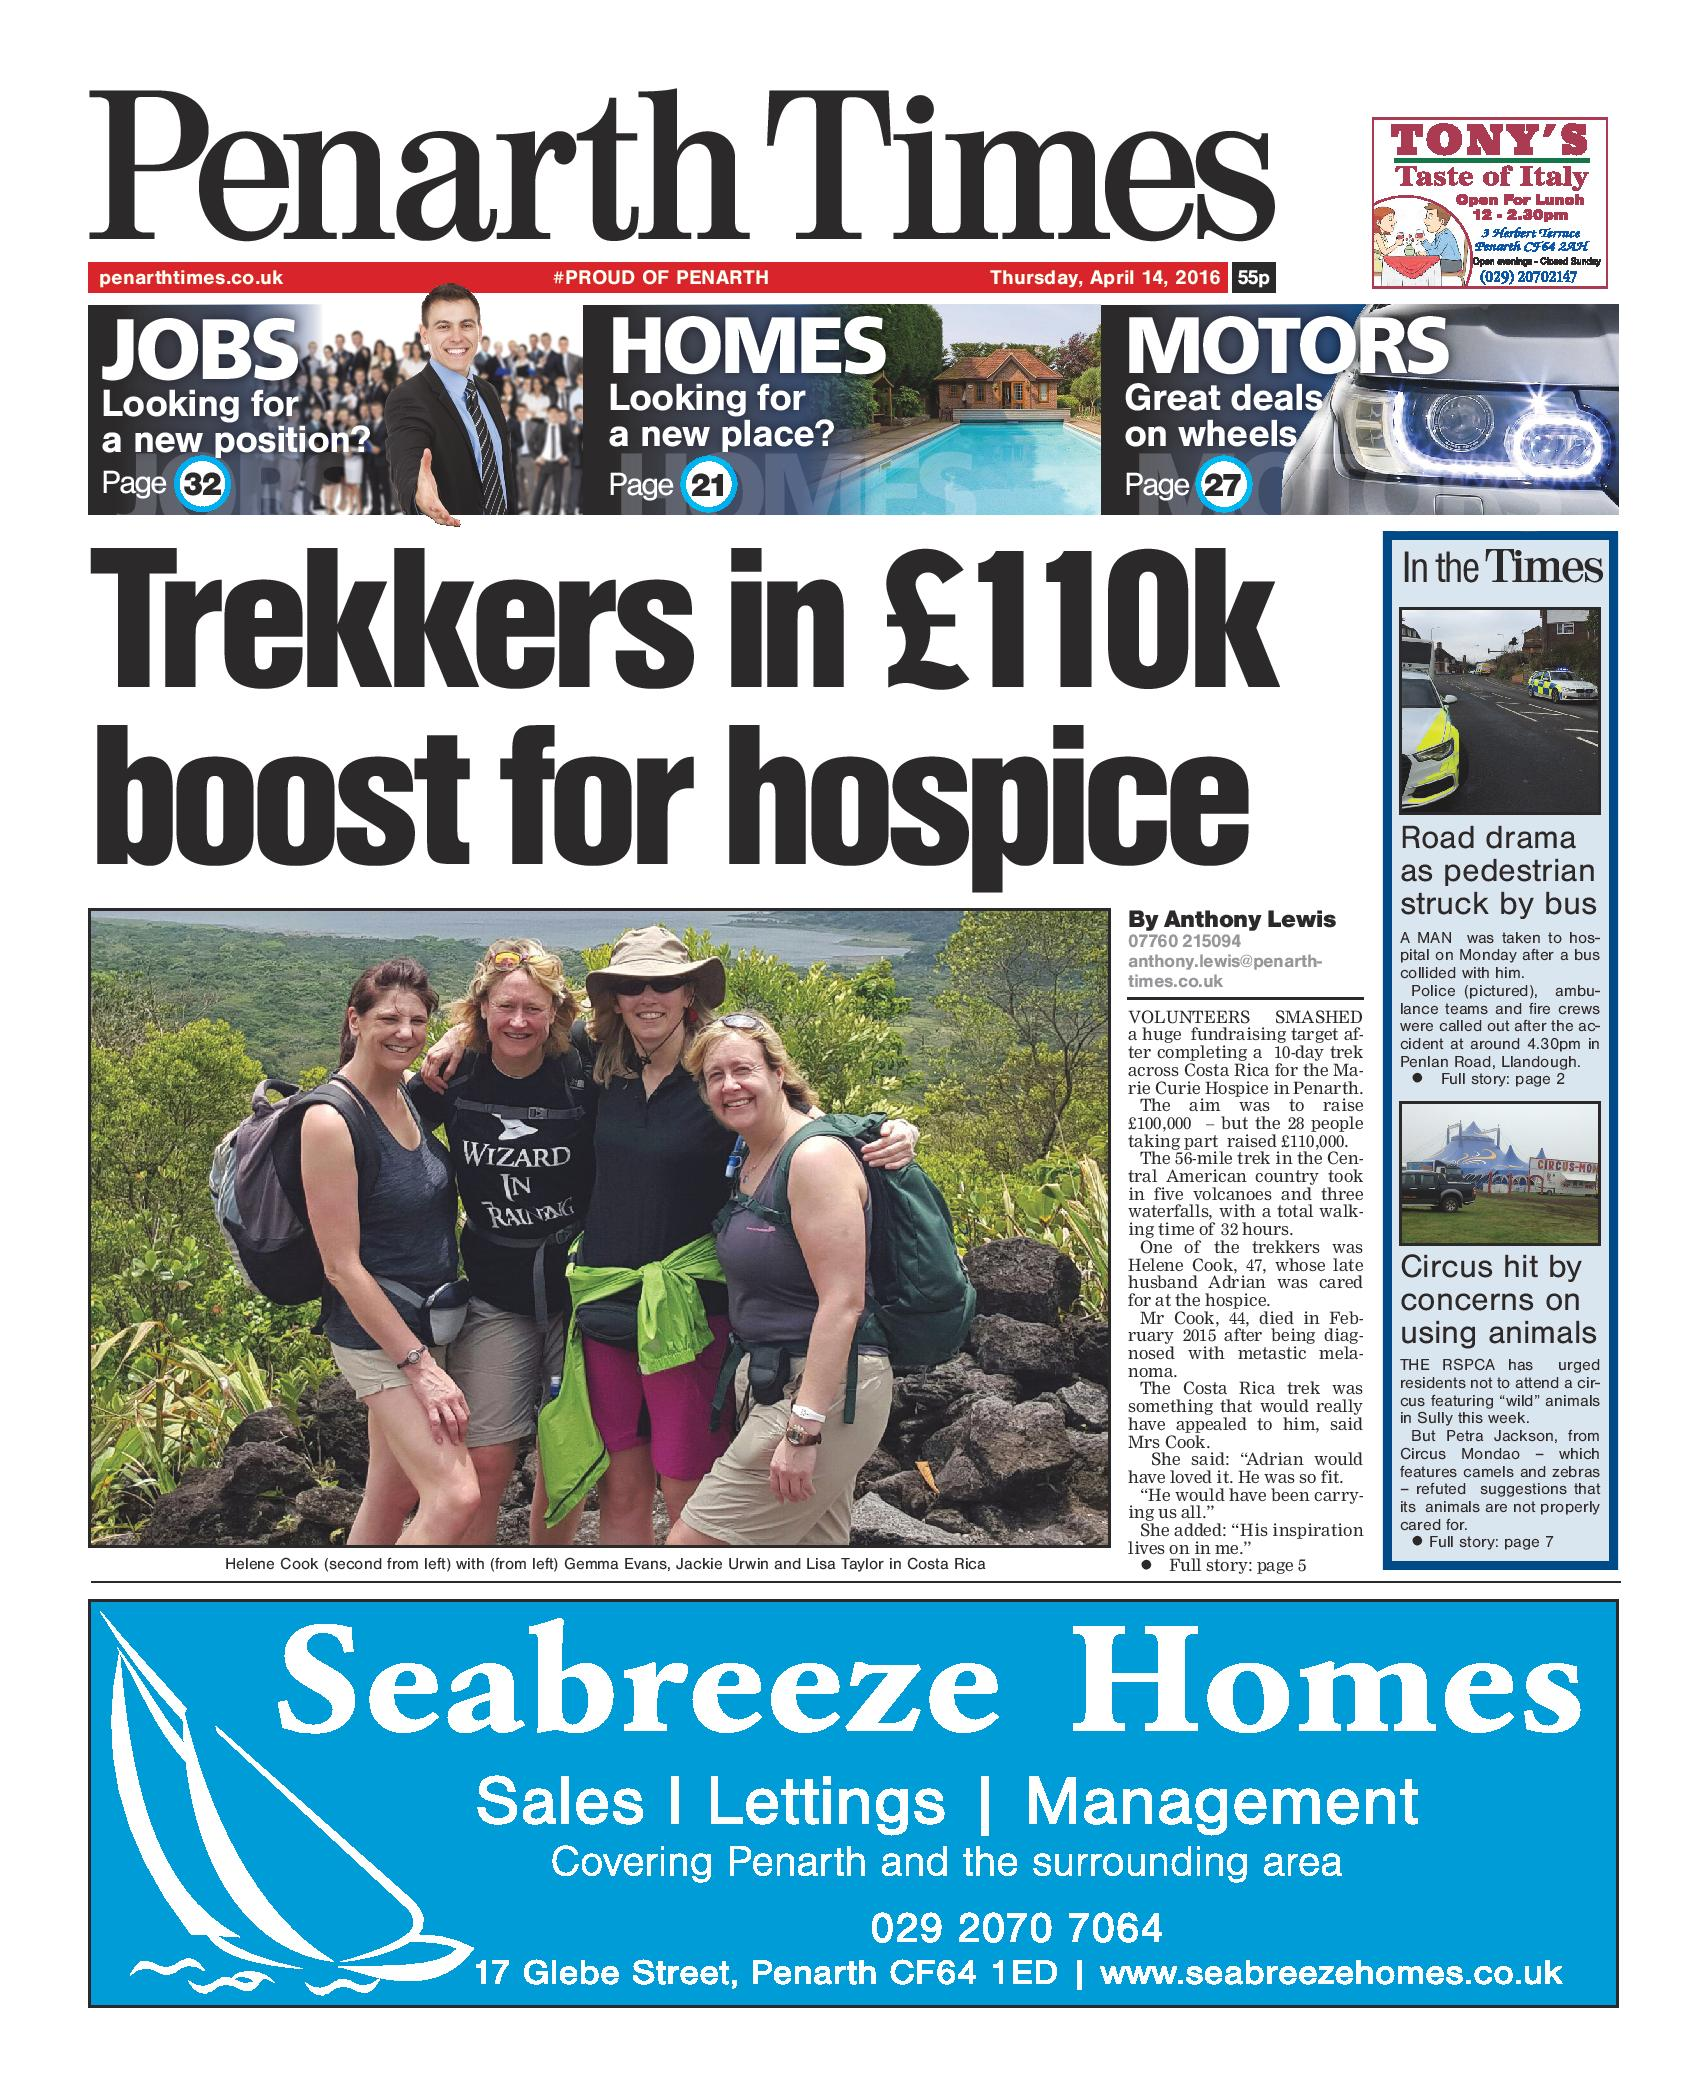 Penarth Times: Charity trekkers smash £100k target for Penarth hospice